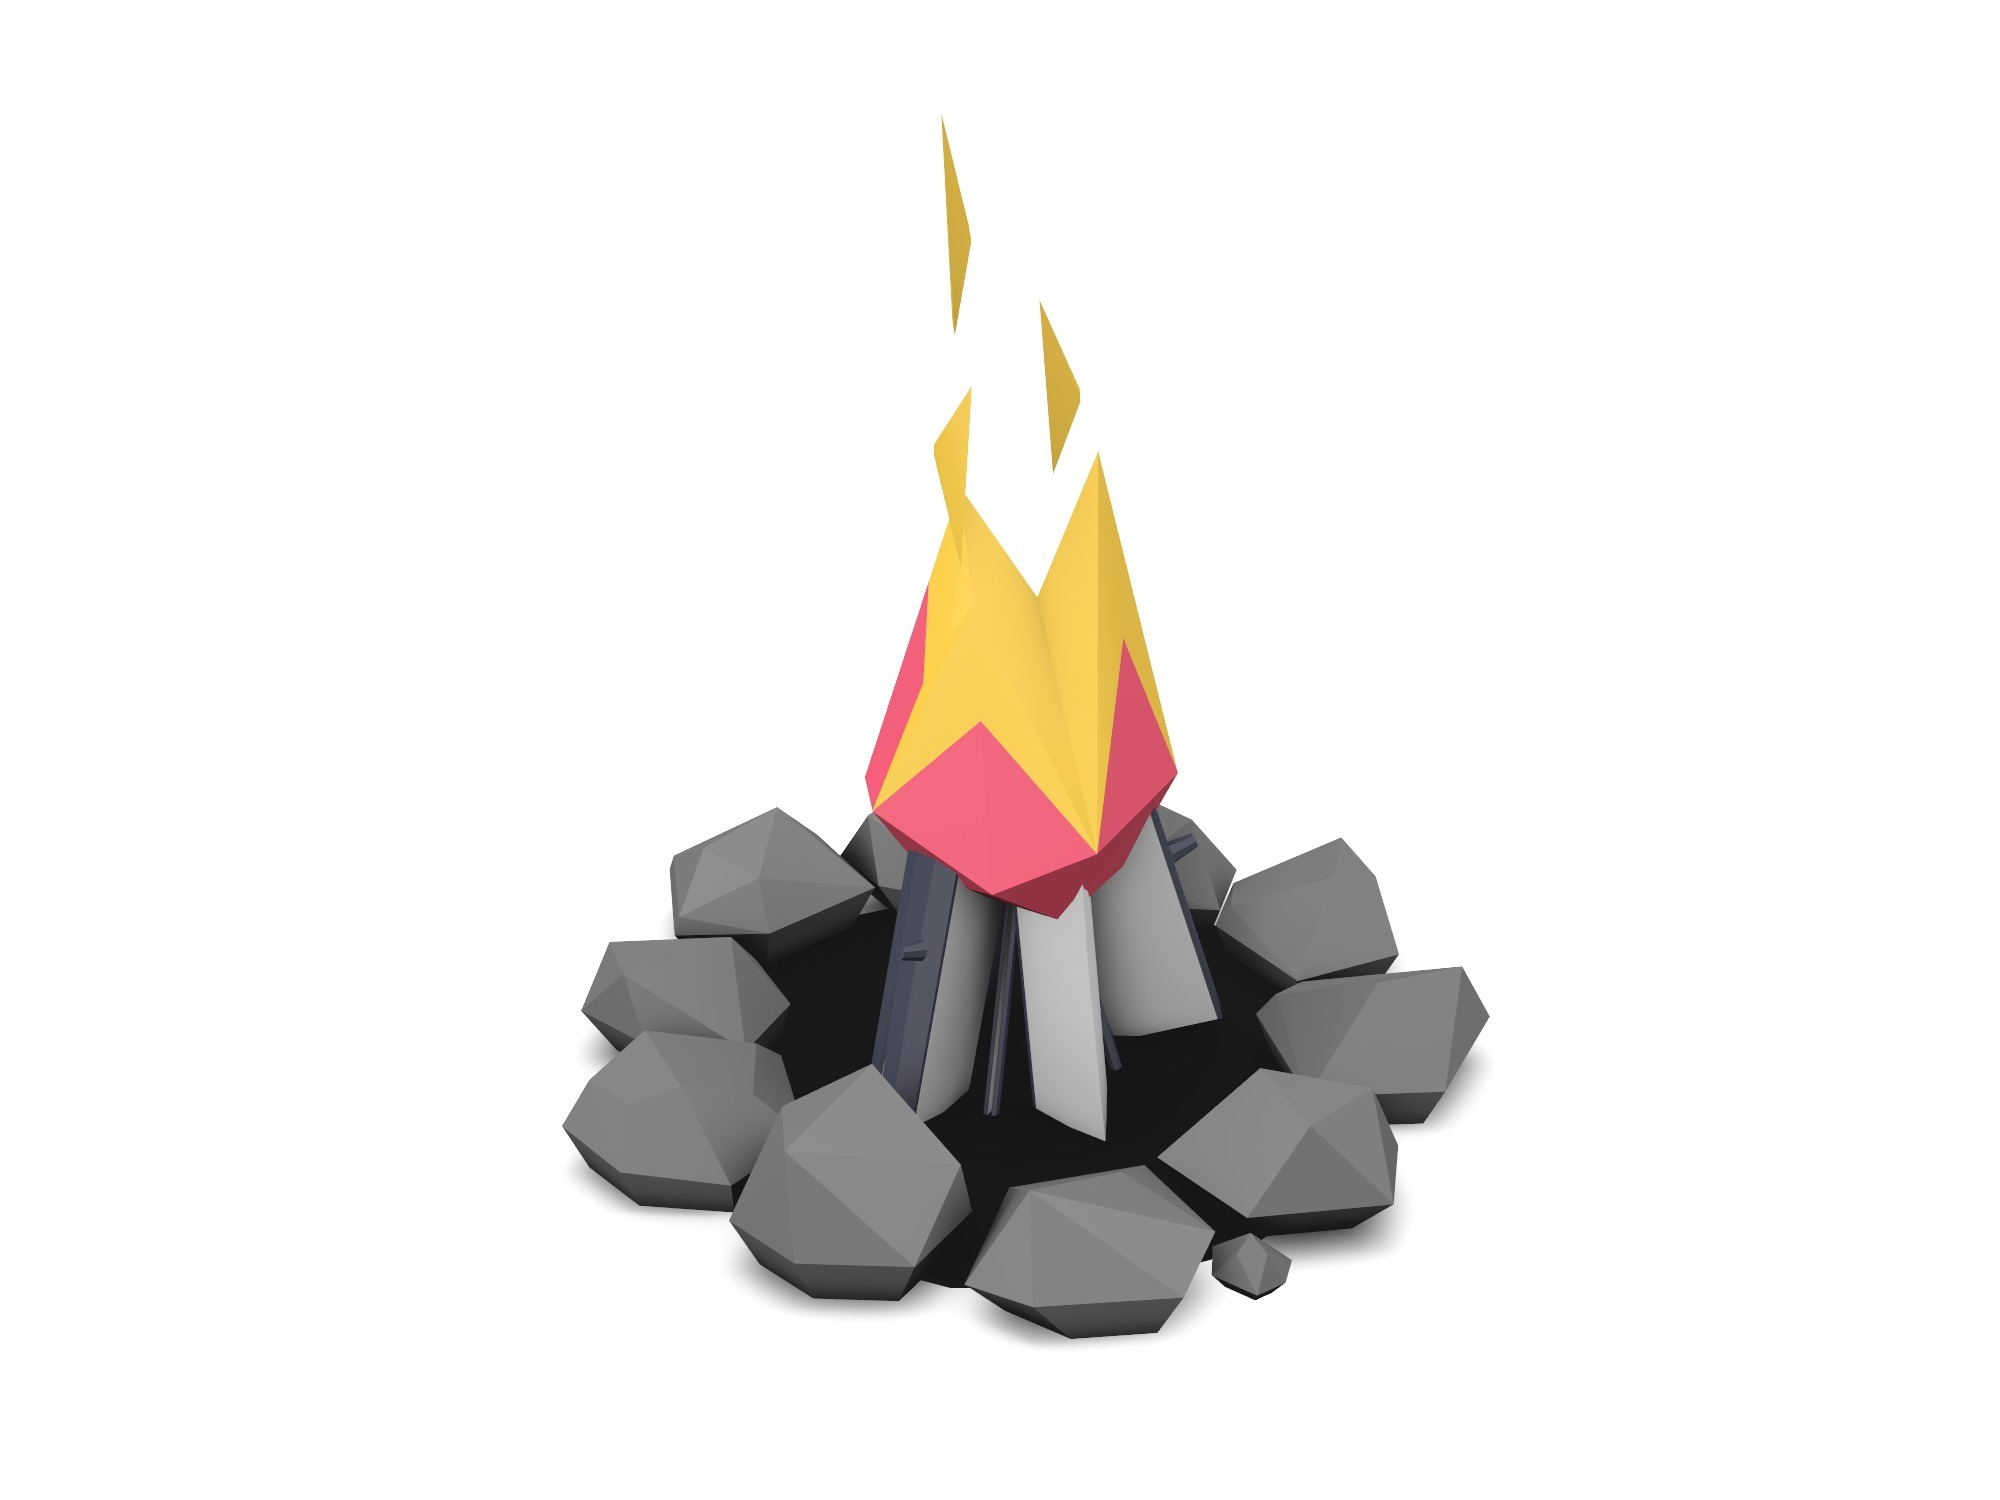 Bonfire low poly - 3D design by Vectary assets Aug 14, 2018